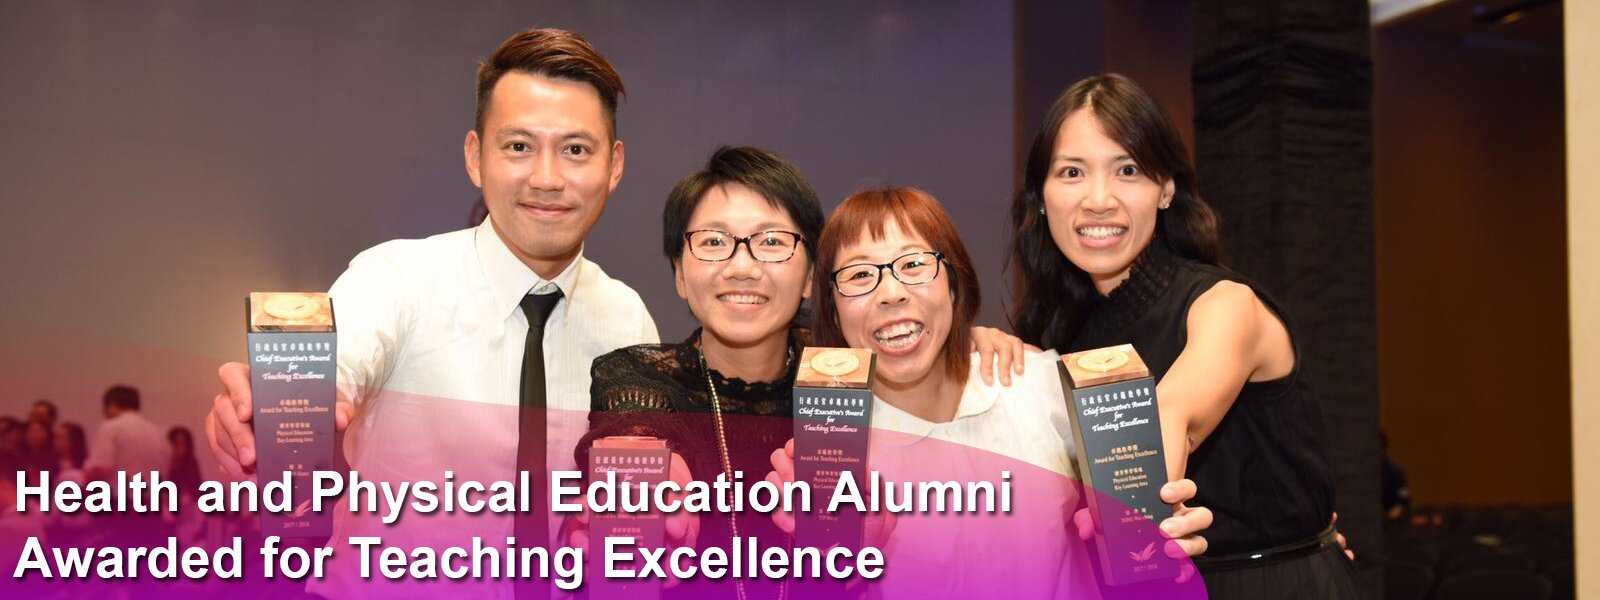 Health and Physical Education Alumni Awarded for Teaching Excellence